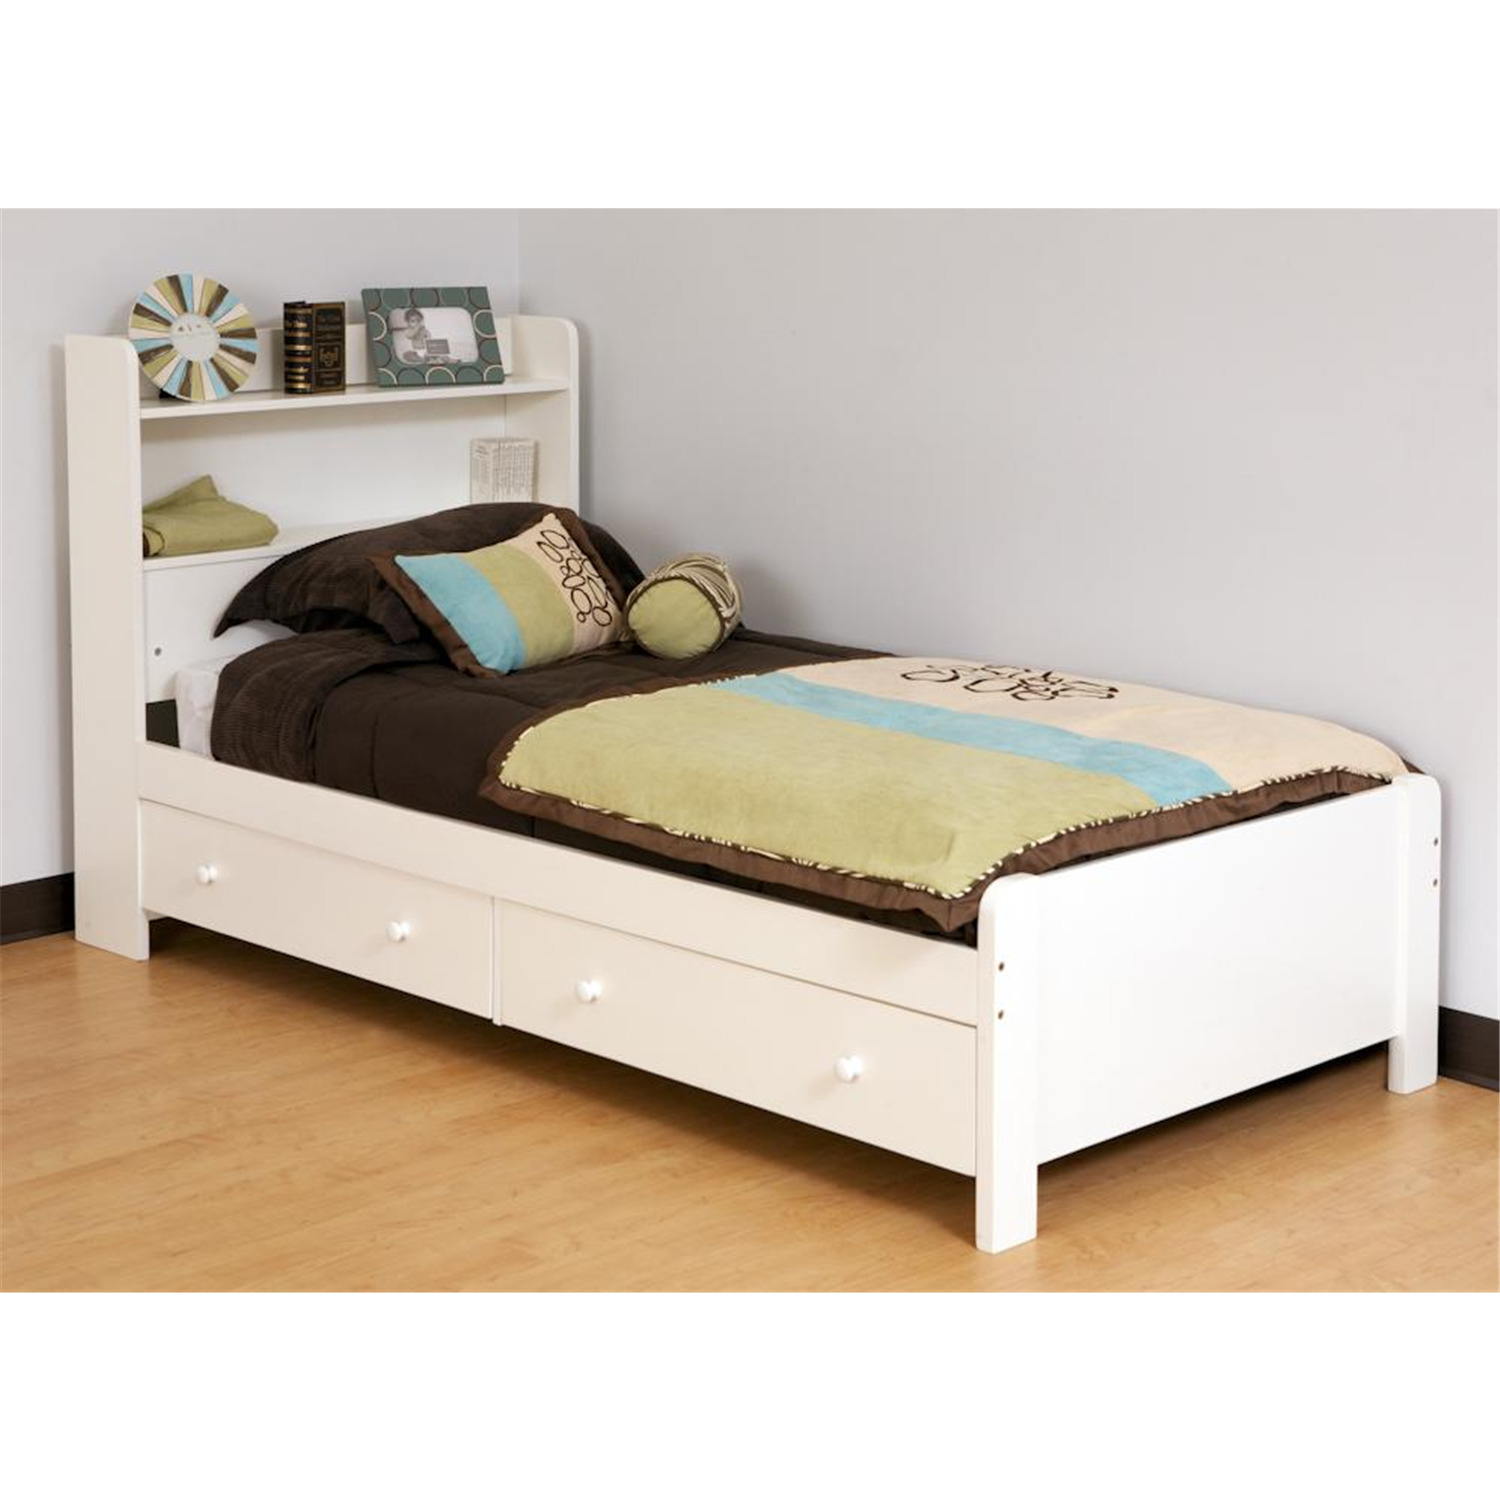 Twin Bed Bing Images